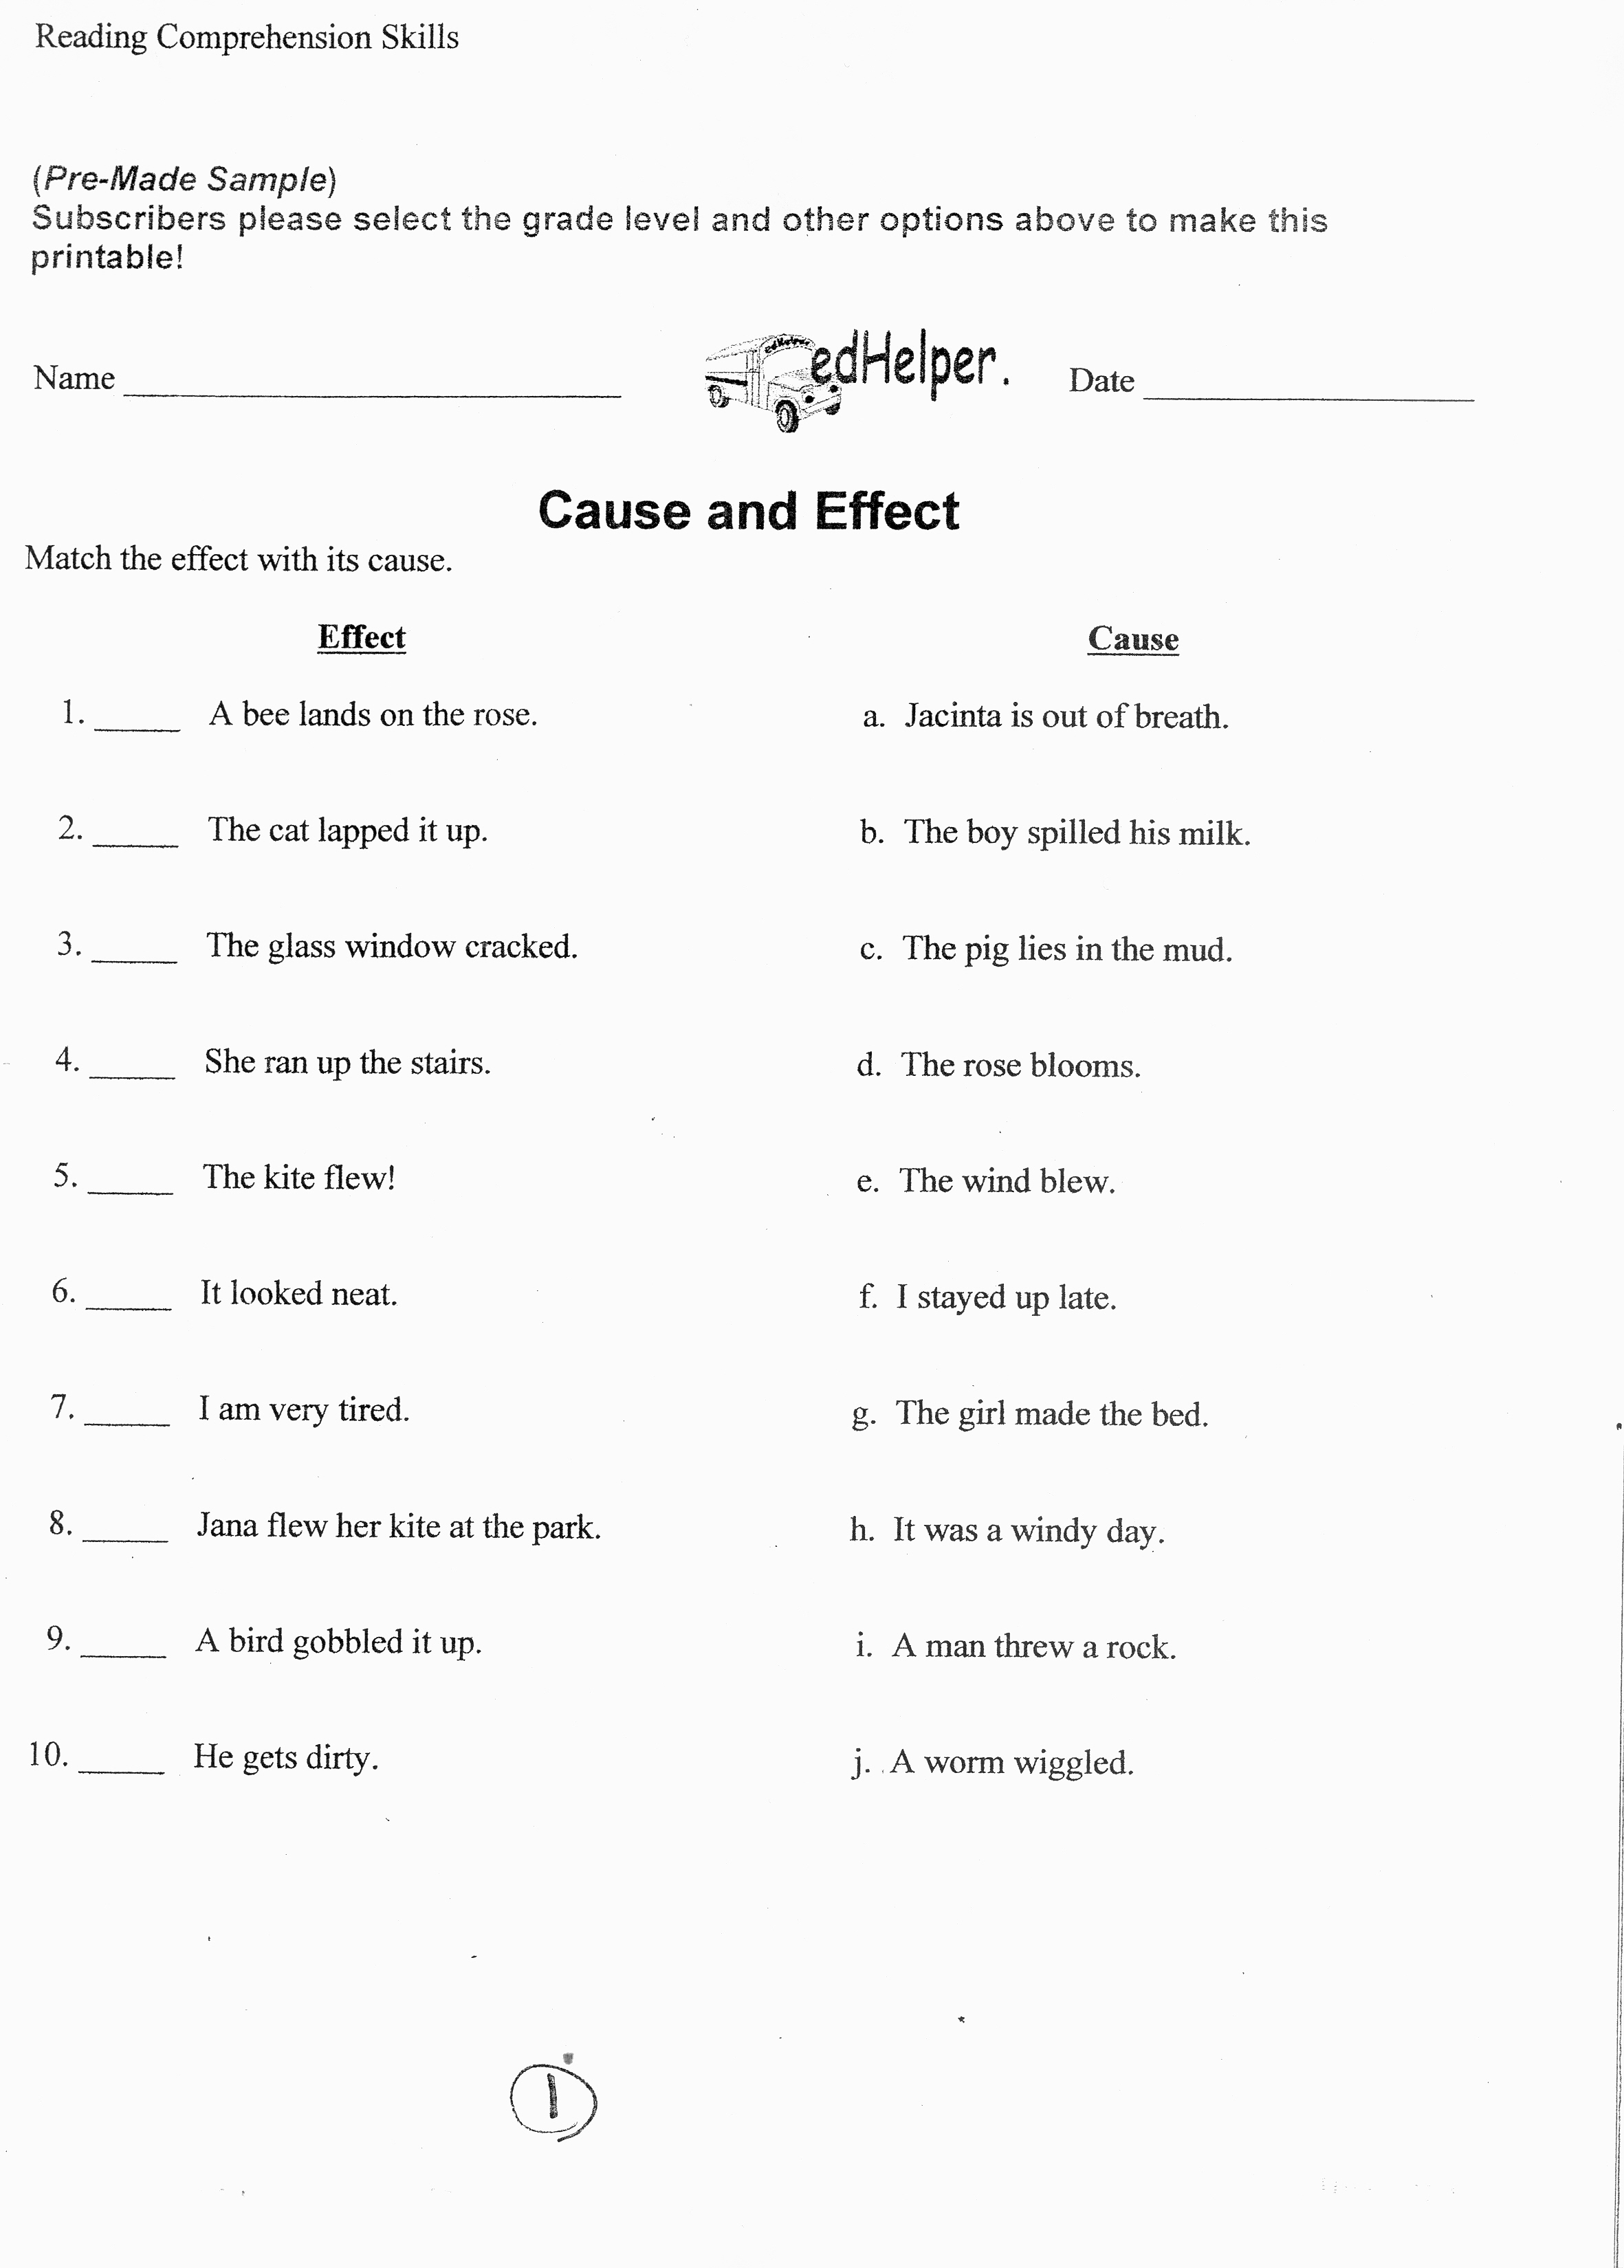 Worksheet 7th Grade Language Arts Worksheets 6th grade lessons middle school language arts help cause and effect worksheet